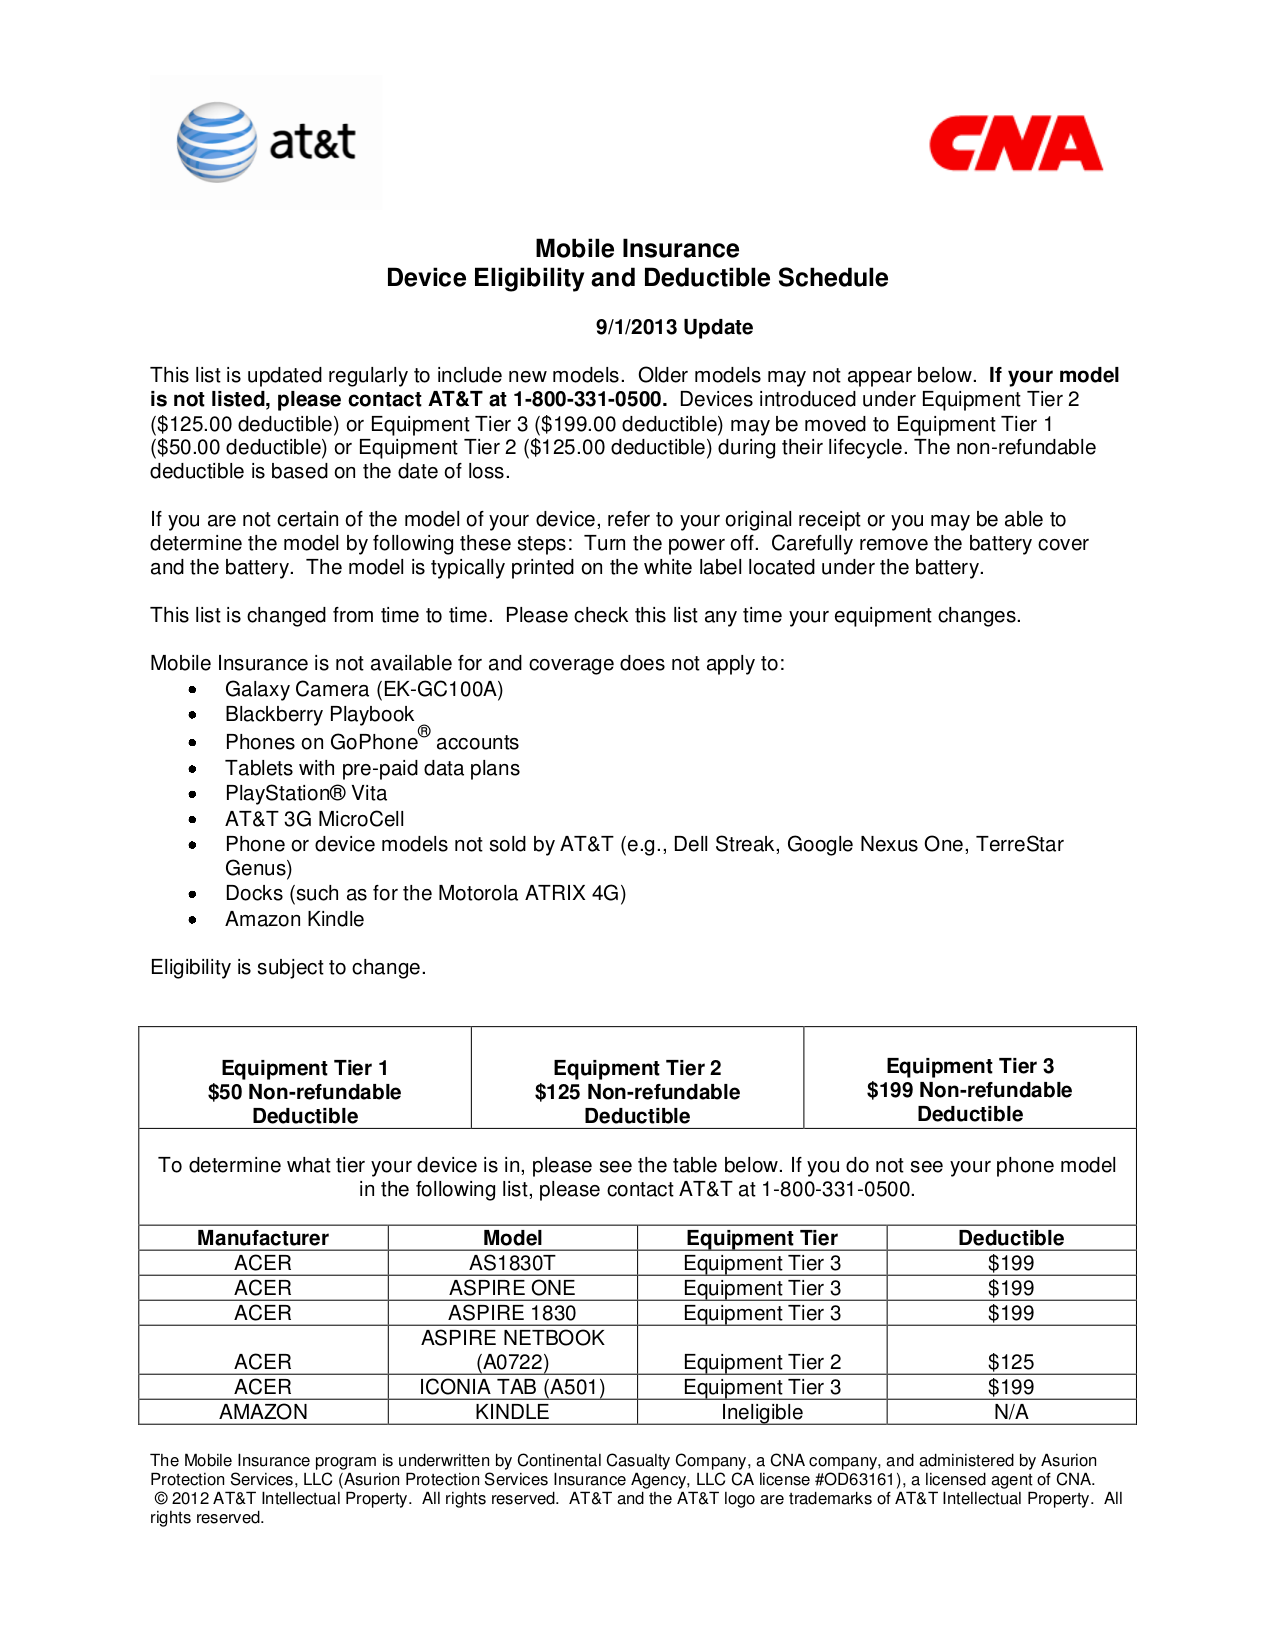 pdf for Samsung Cell Phone SGH-A117 manual